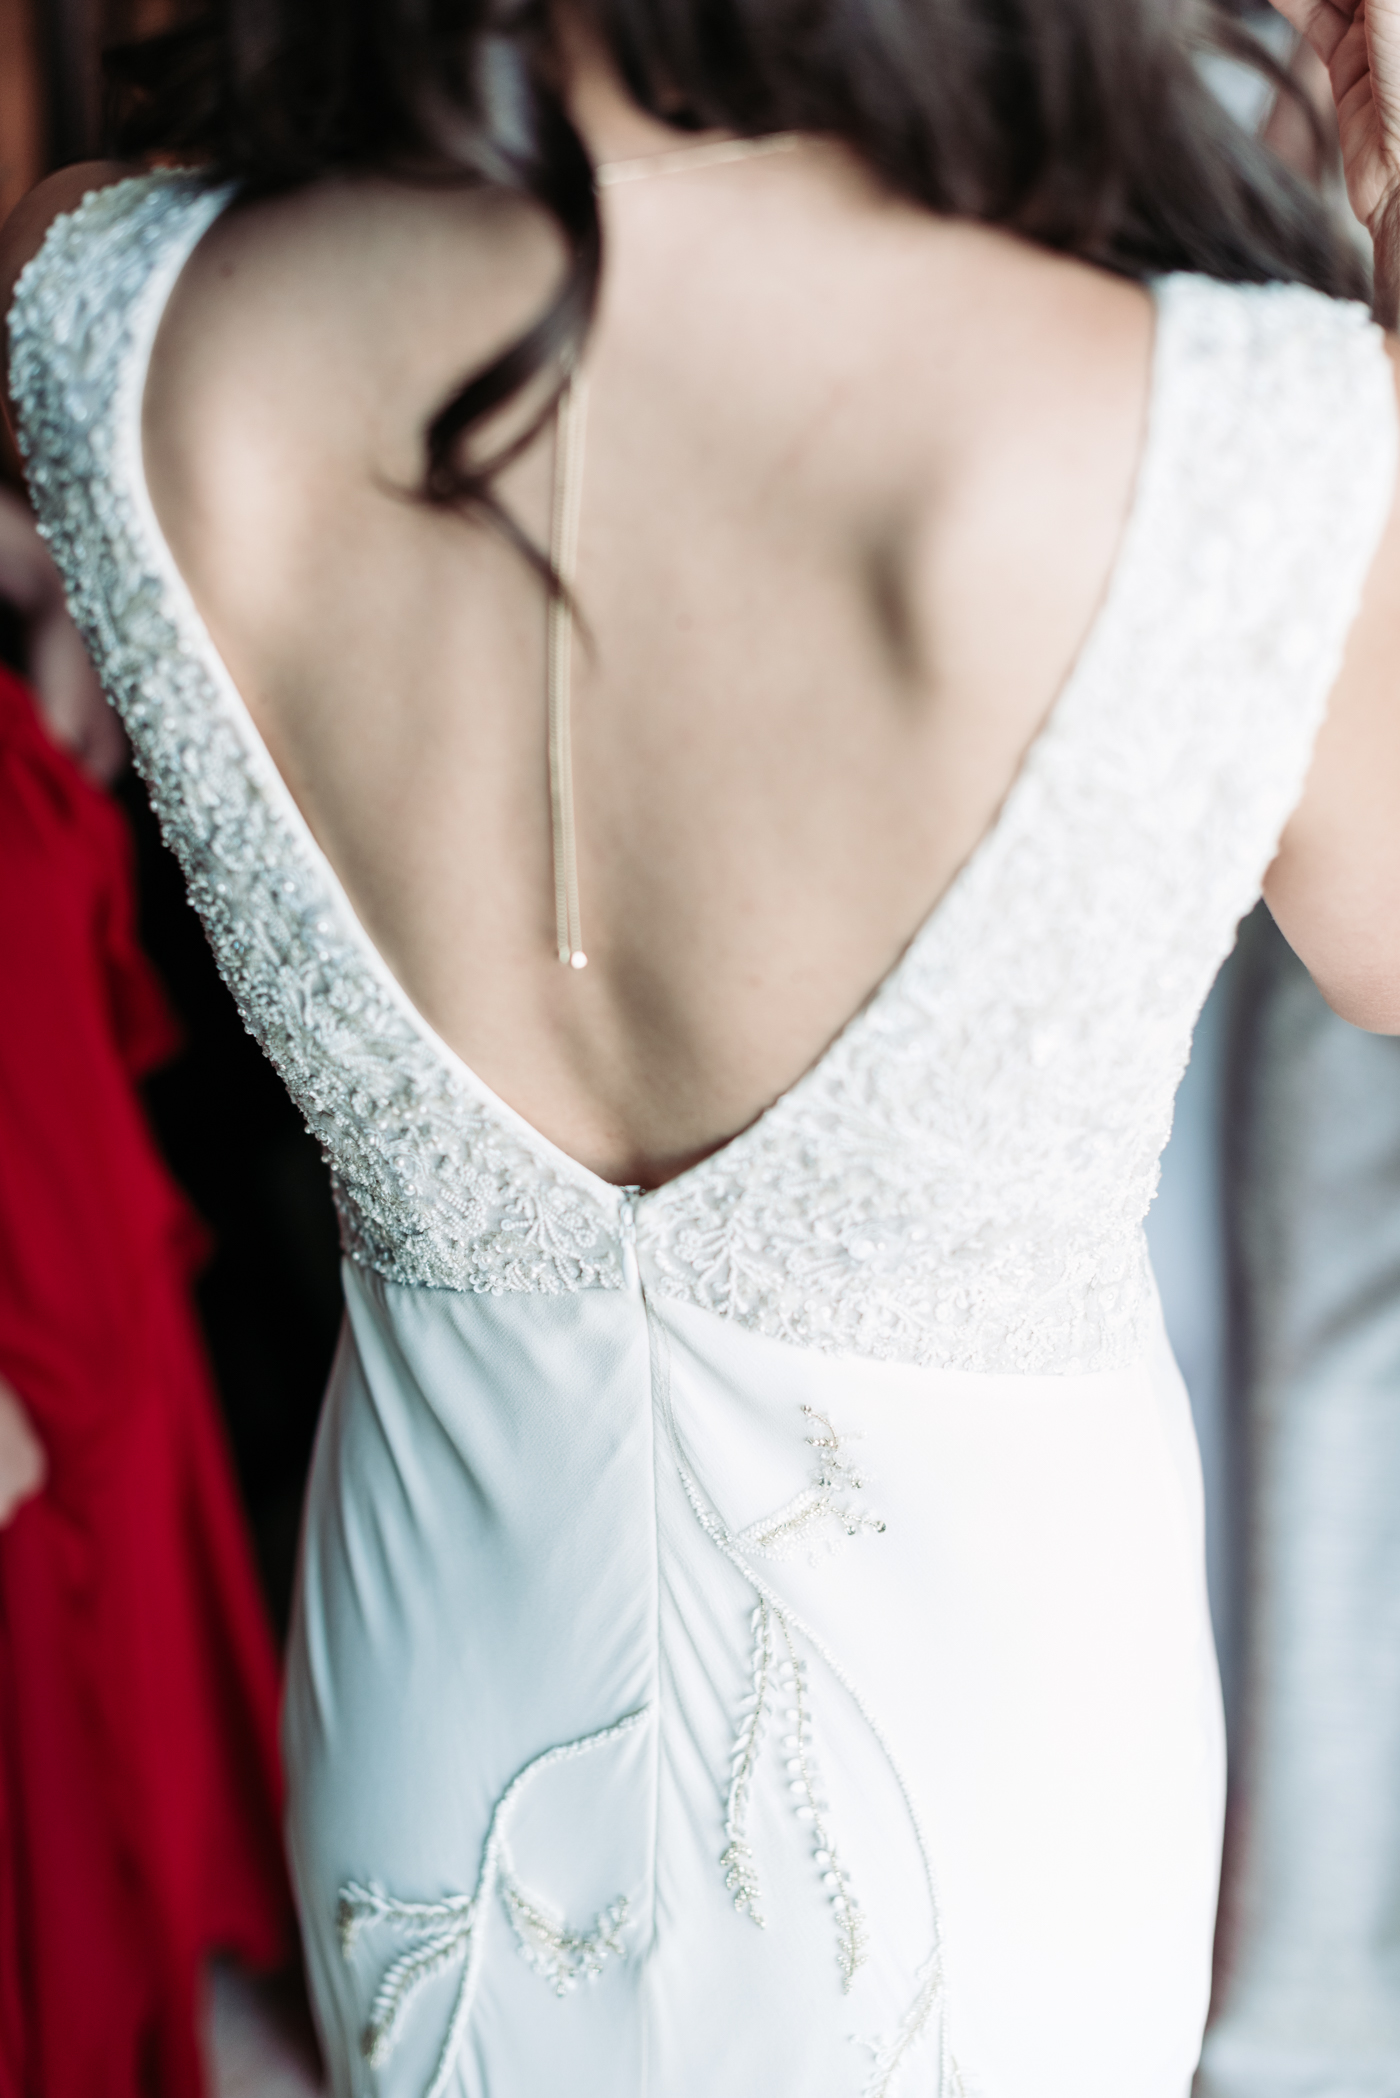 Wedding details beading Bennett Brown photography wedding bridal gown bride